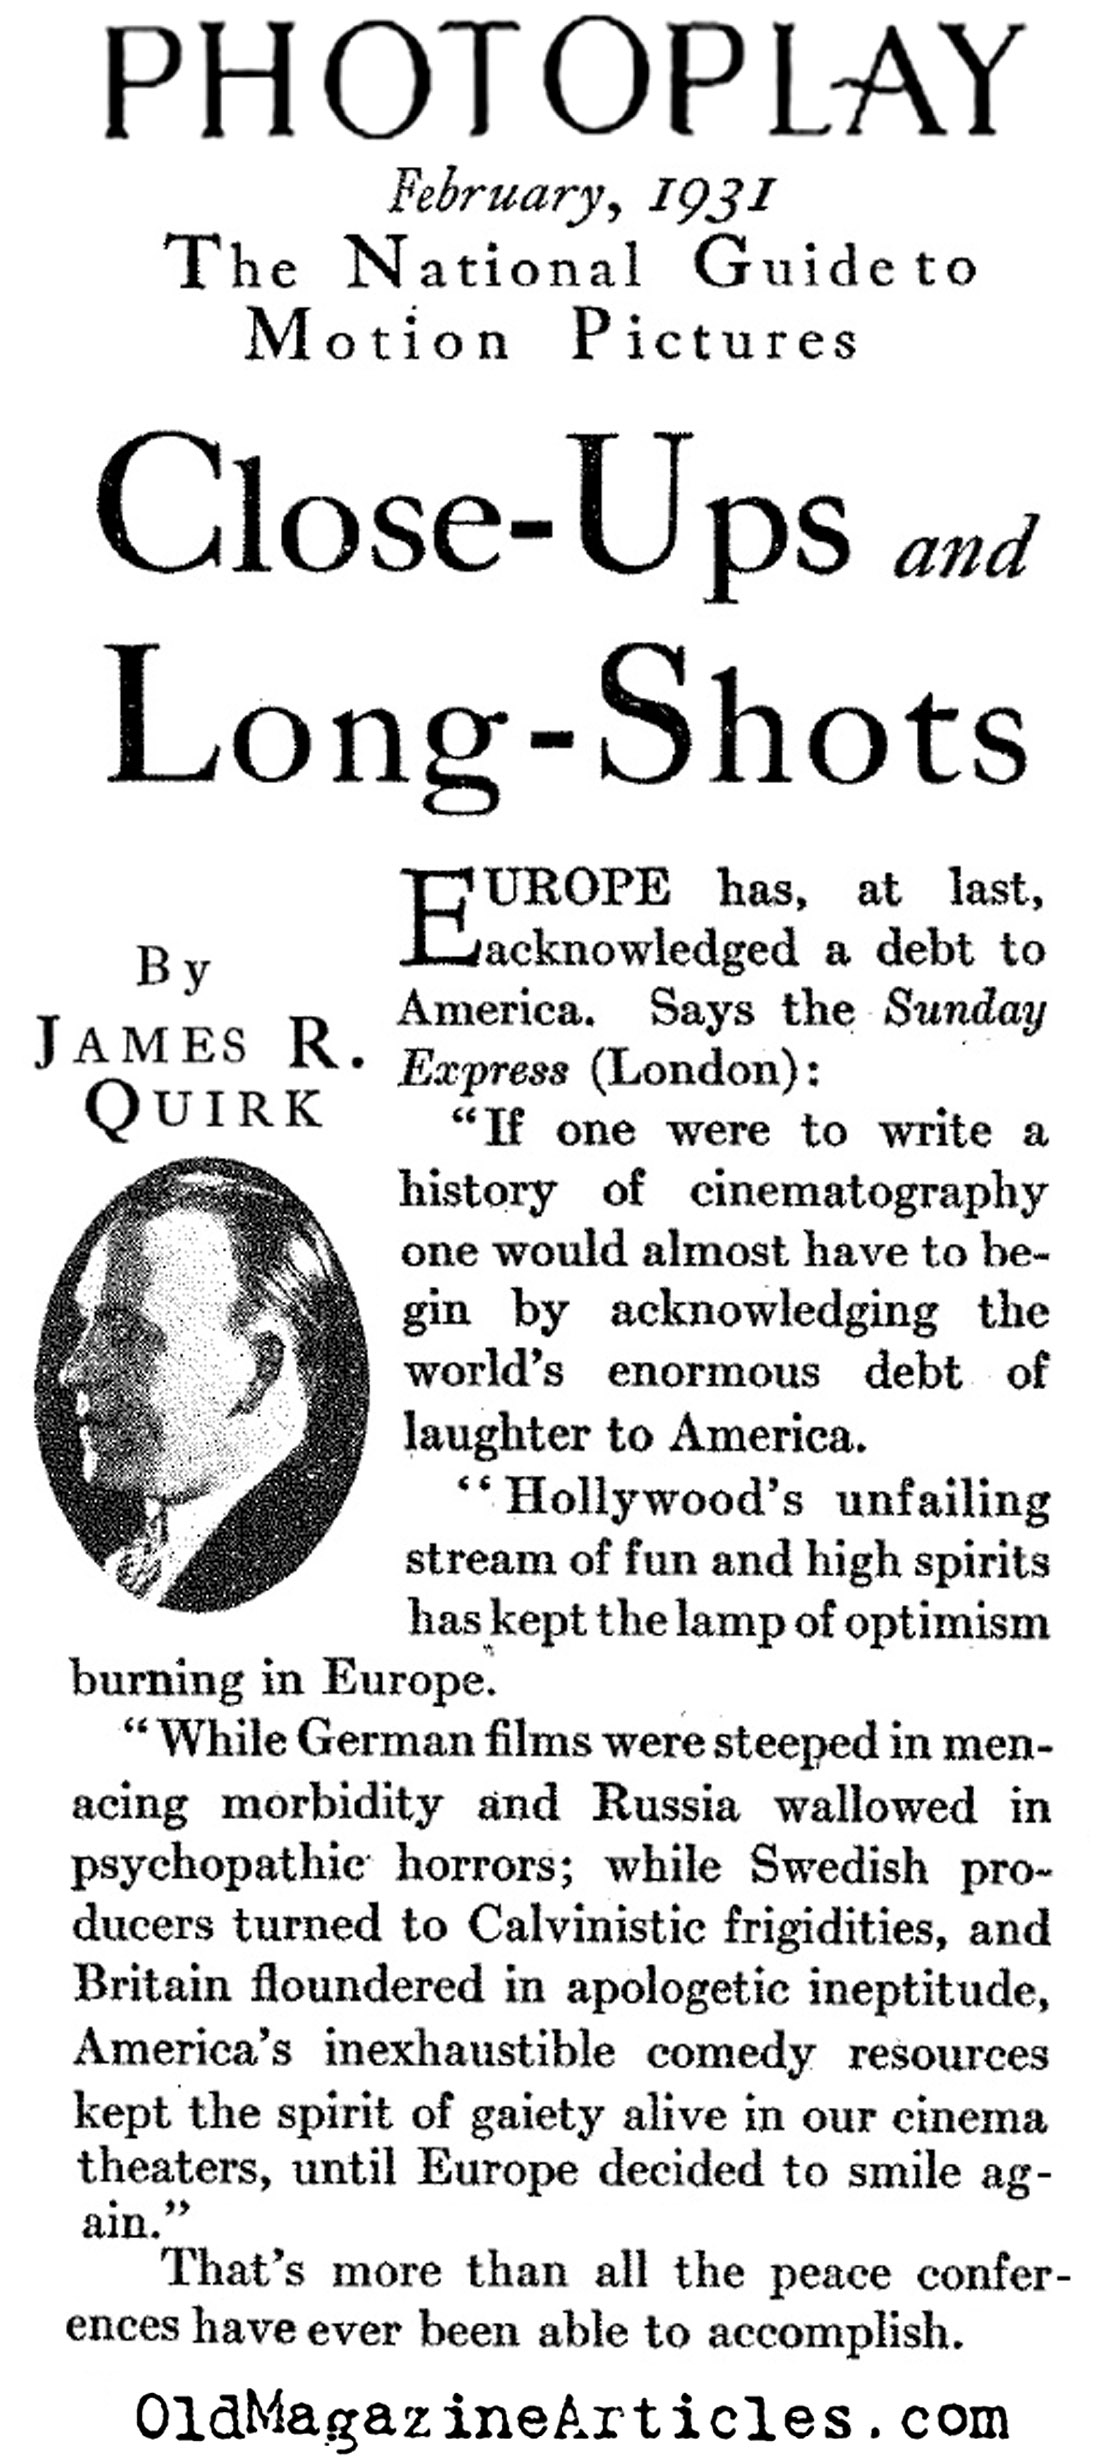 European Praise for American Silent Comedies (Photoplay Magazine, 1931)